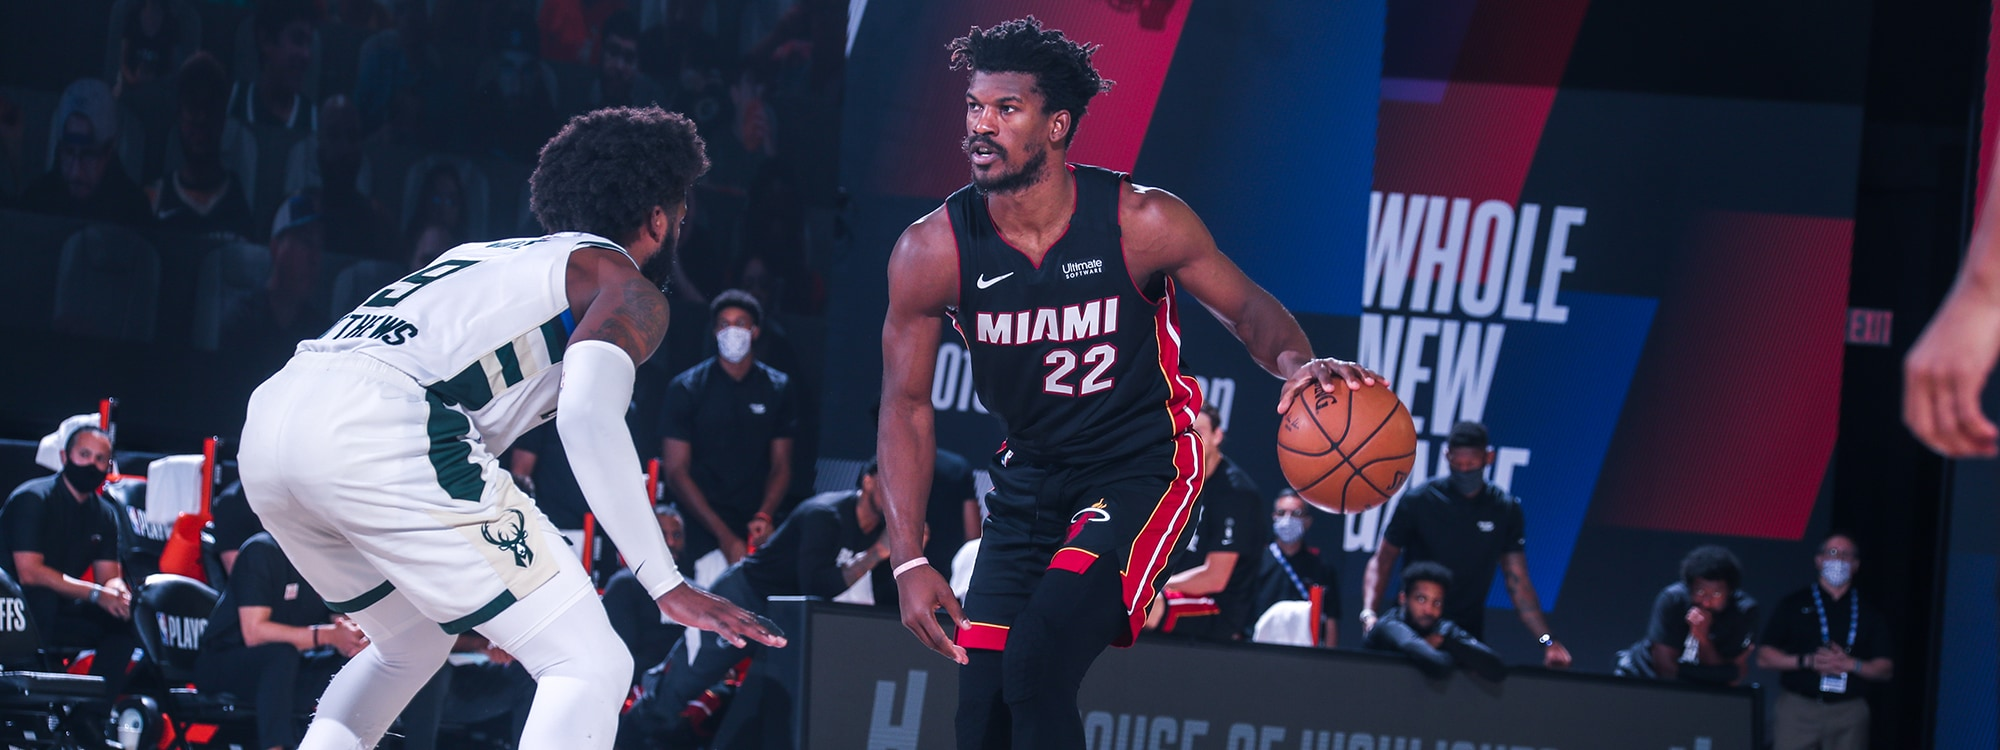 Heat Eliminate No 1 Seed Bucks Advance To Eastern Conference Finals Miami Heat